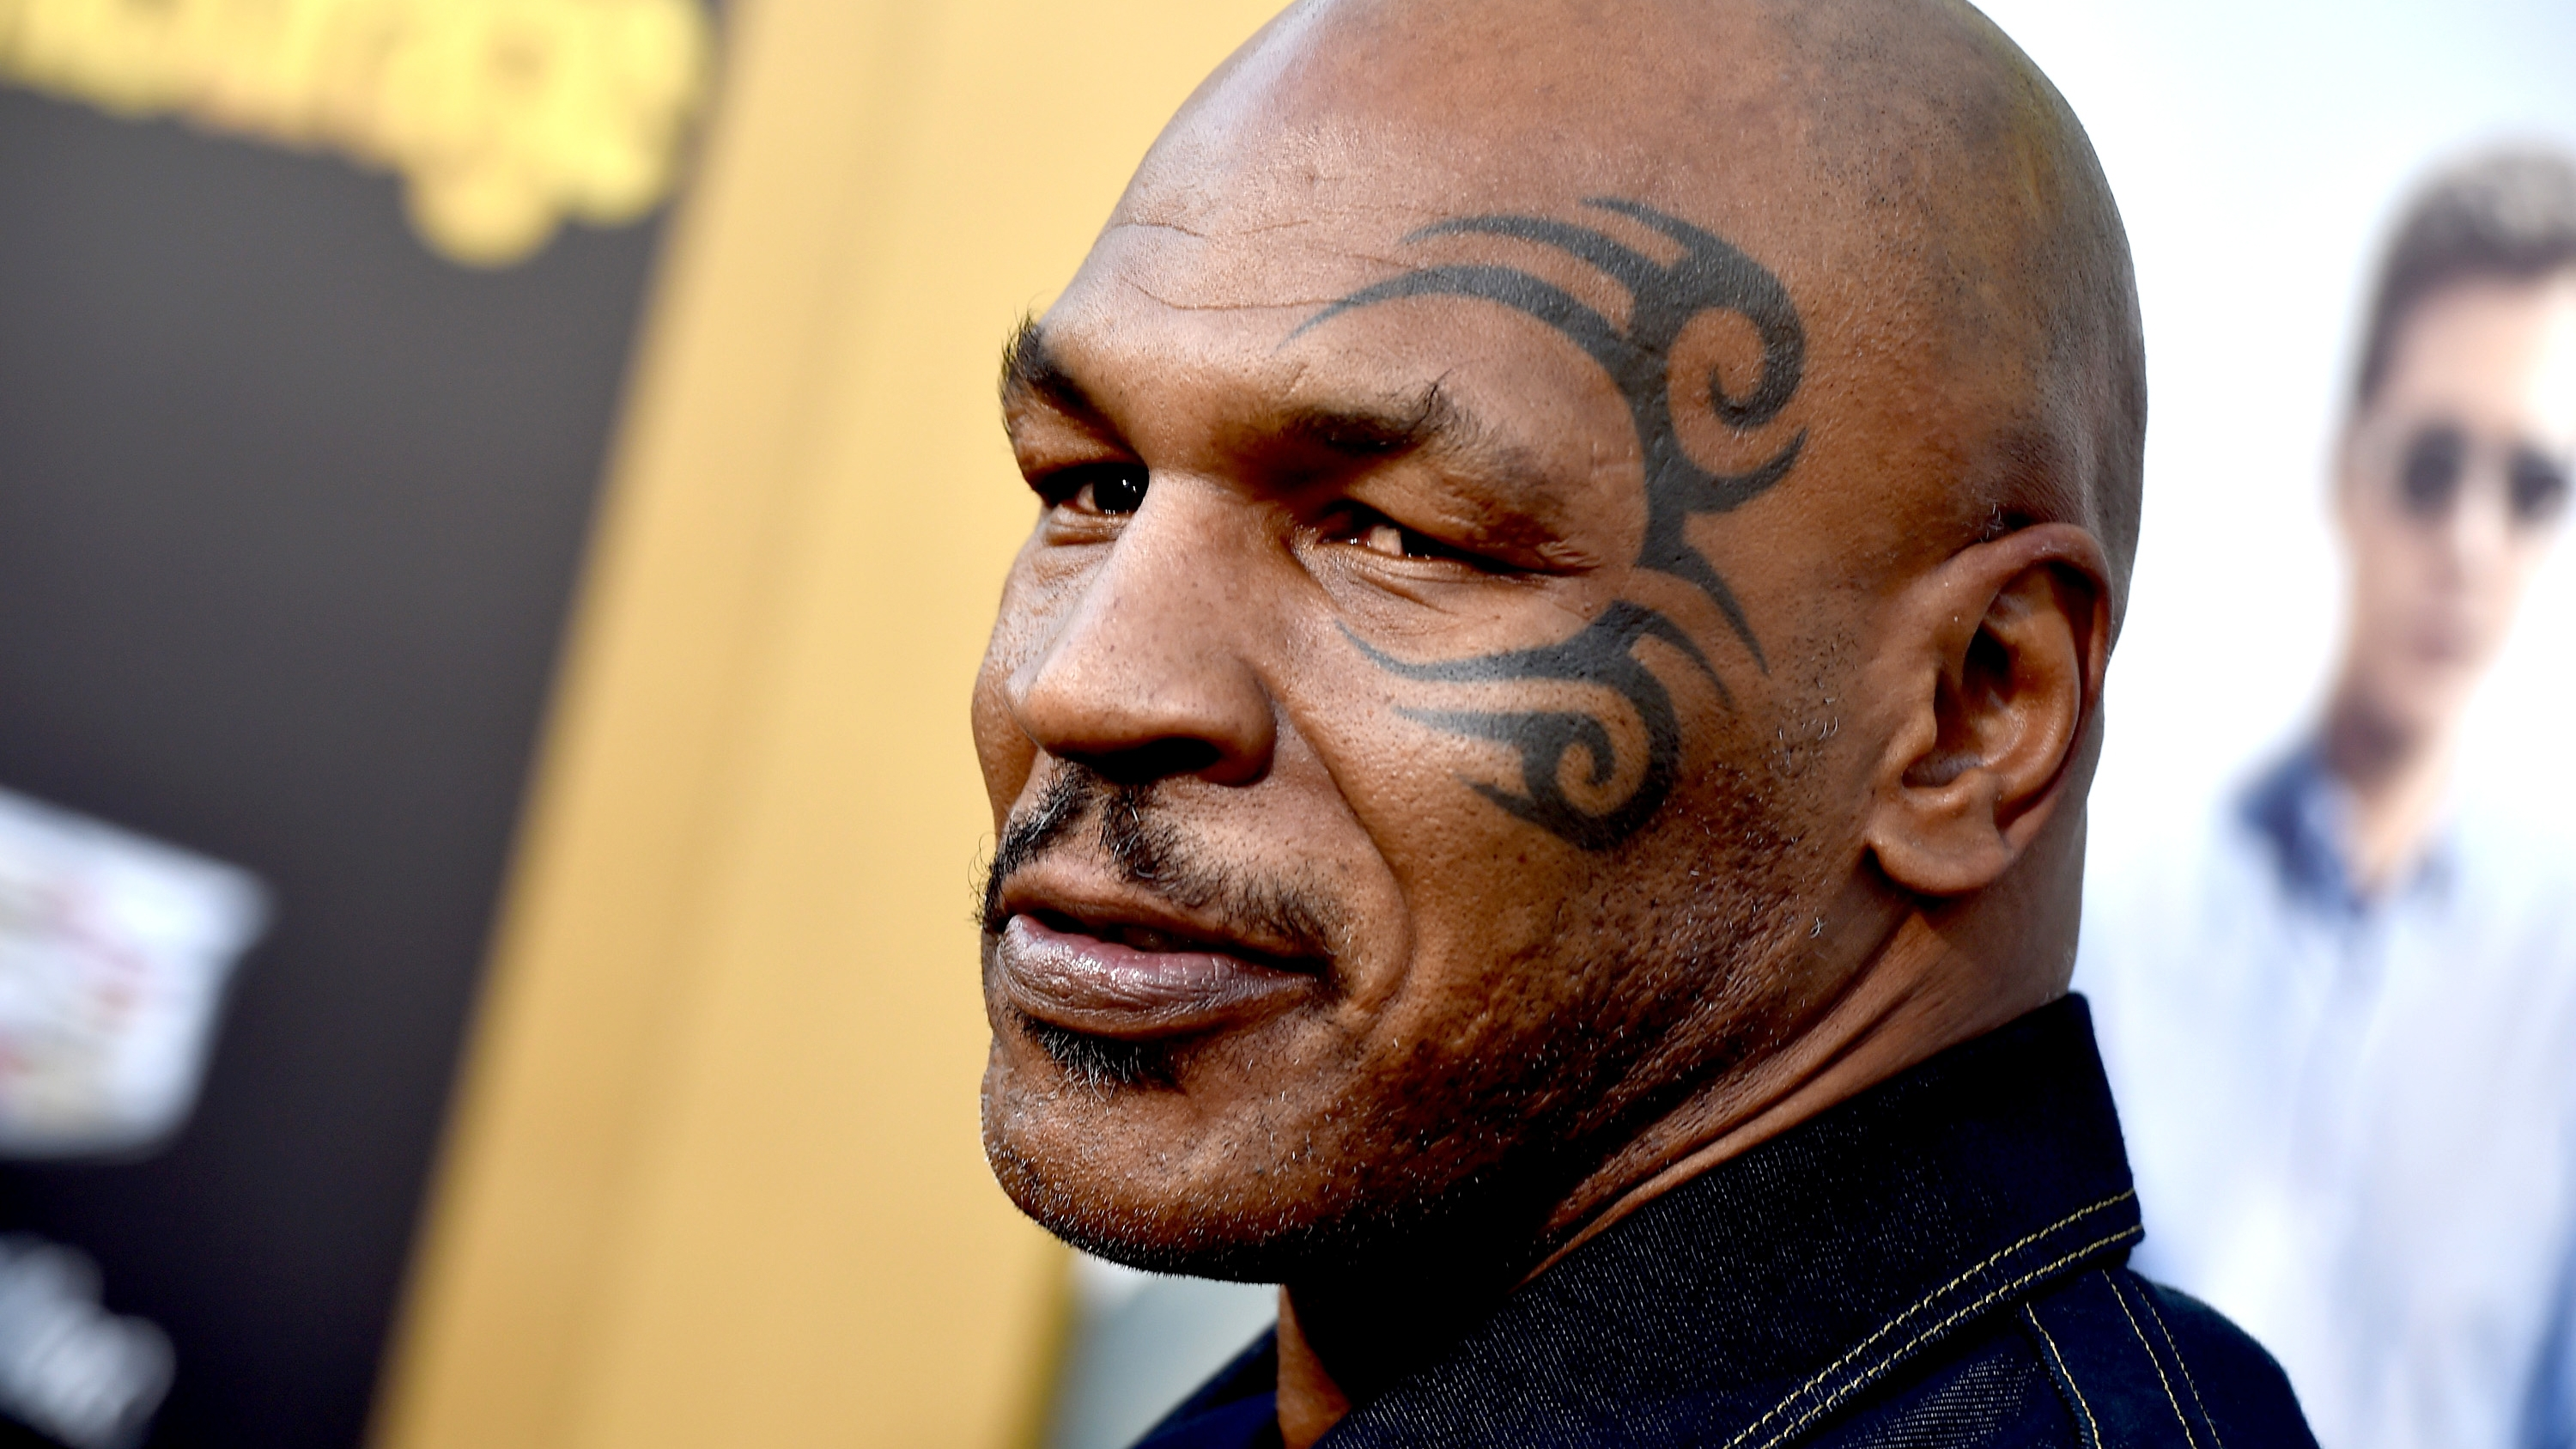 mike tyson wallpapers - photo #19